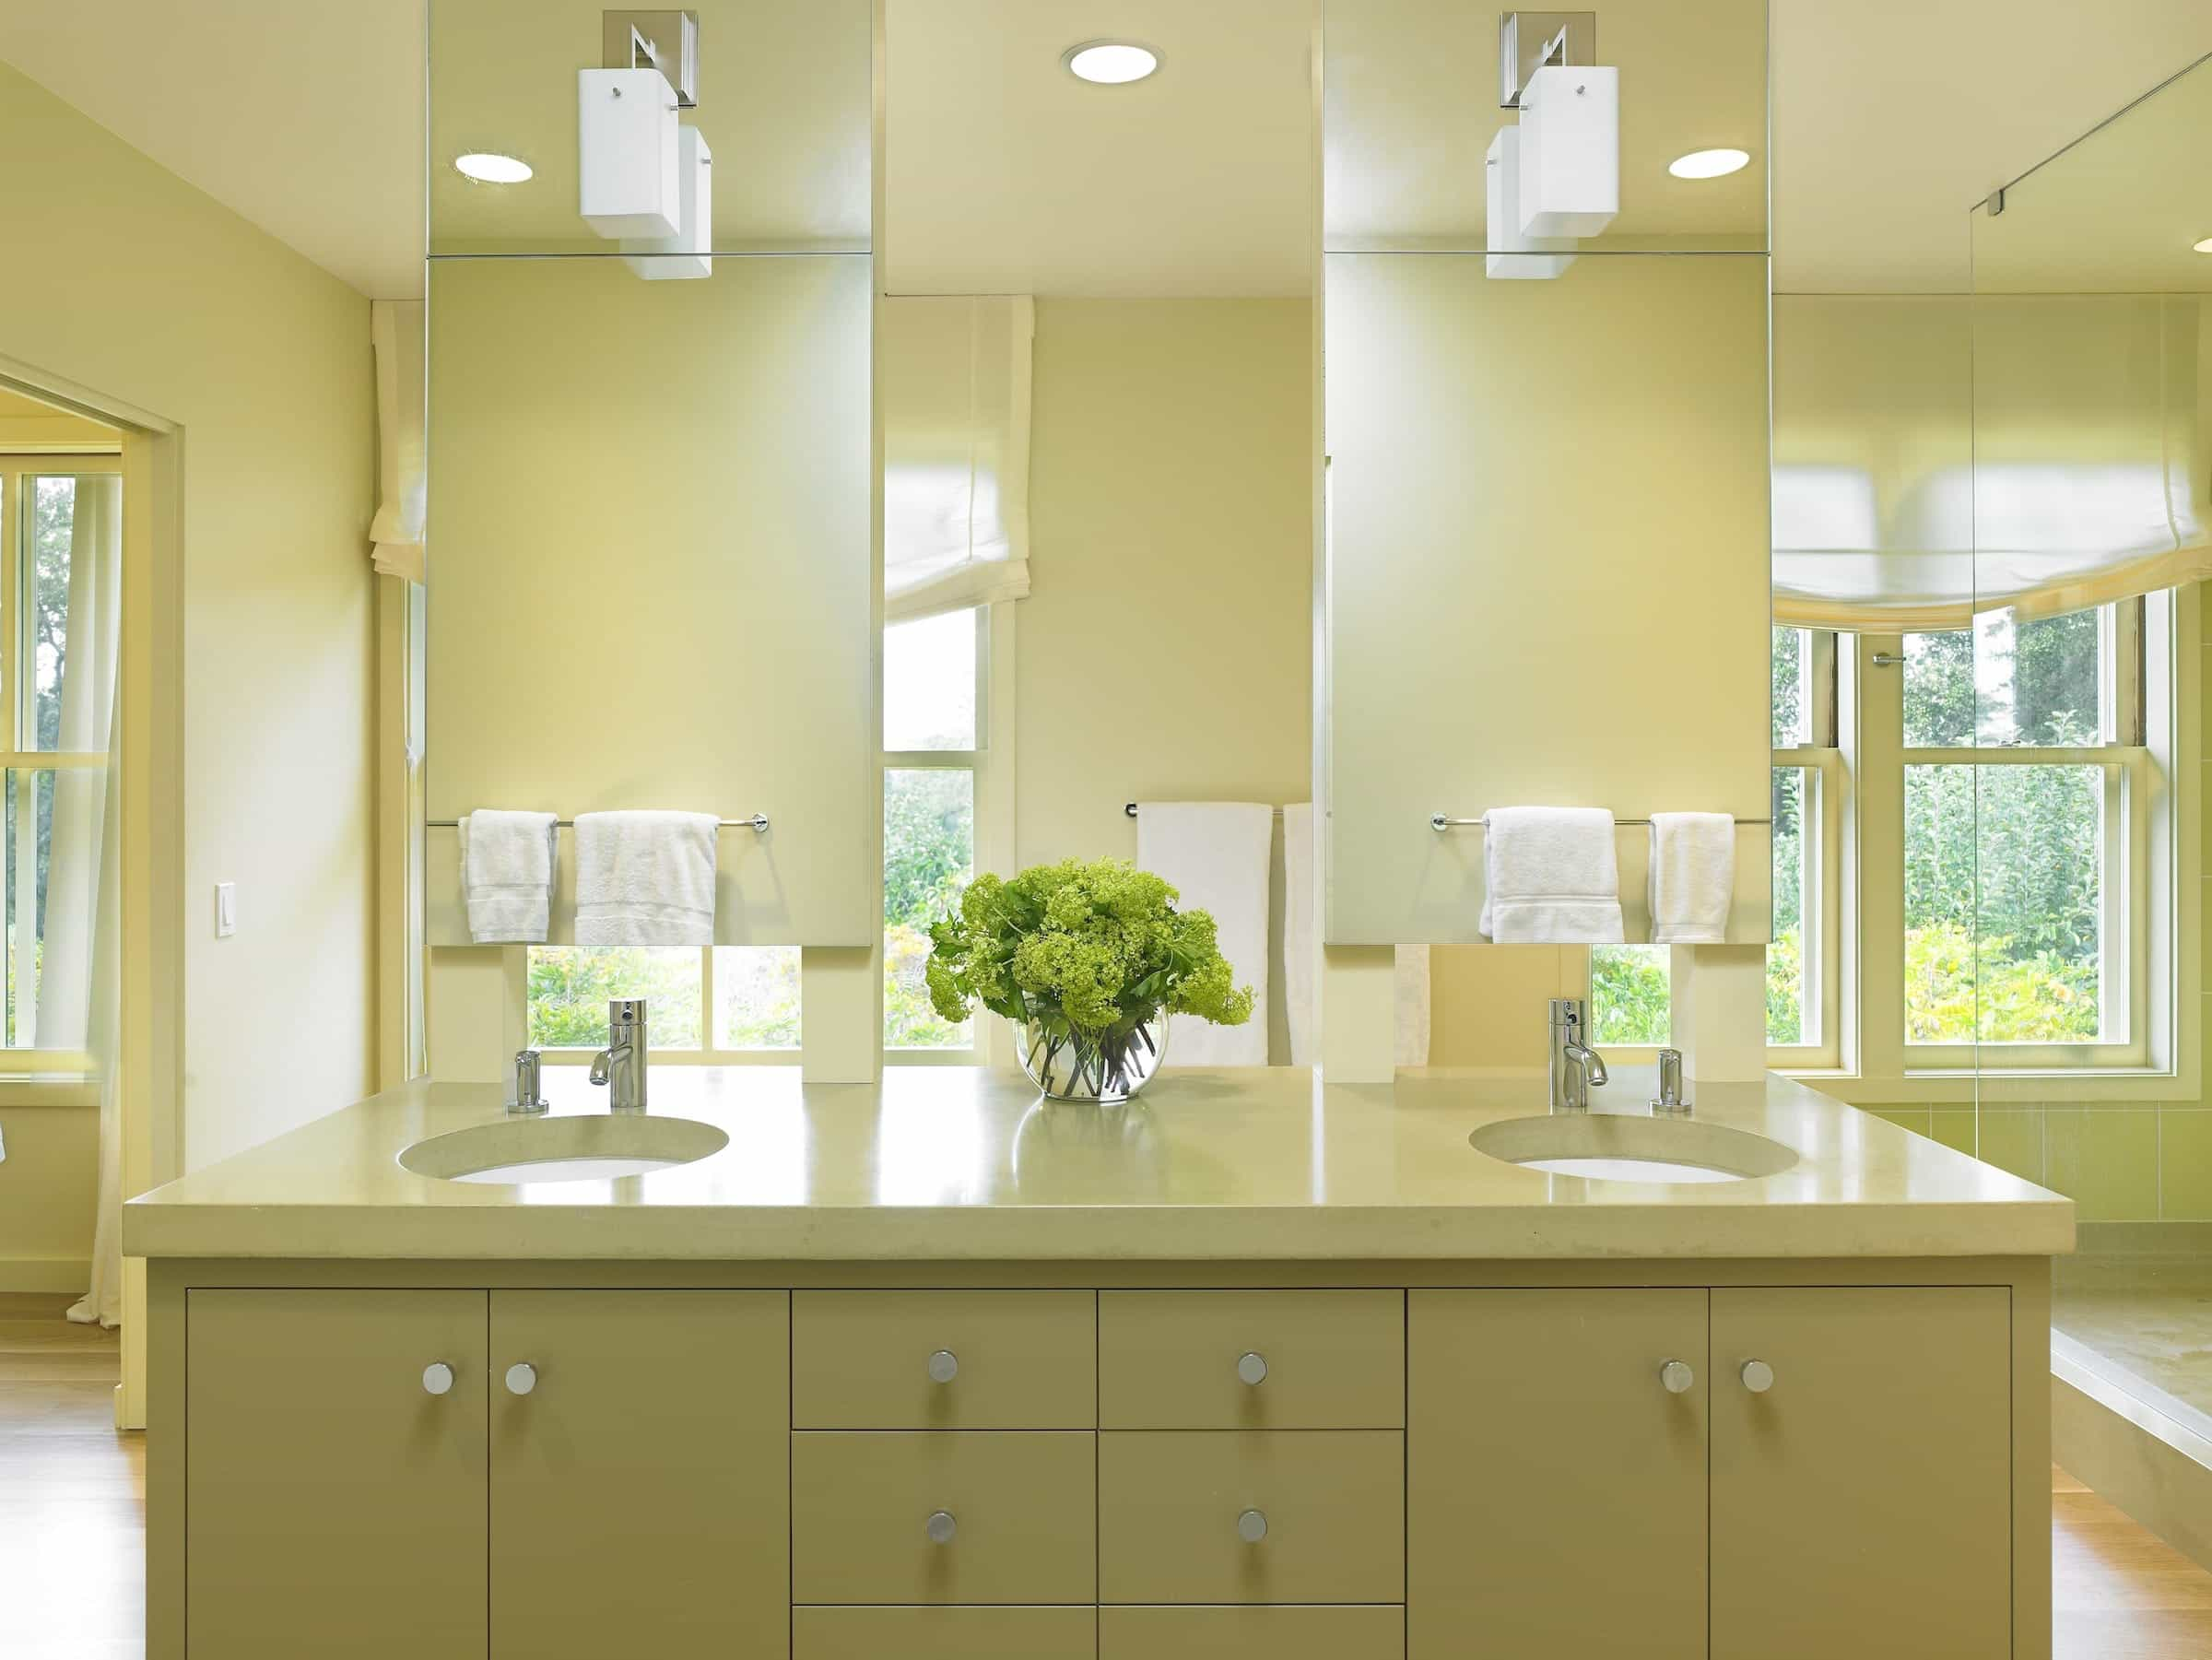 Contemporary Bathroom With Tall Double Vanity Mirrors And Light Fixtures (Photo 11 of 20)